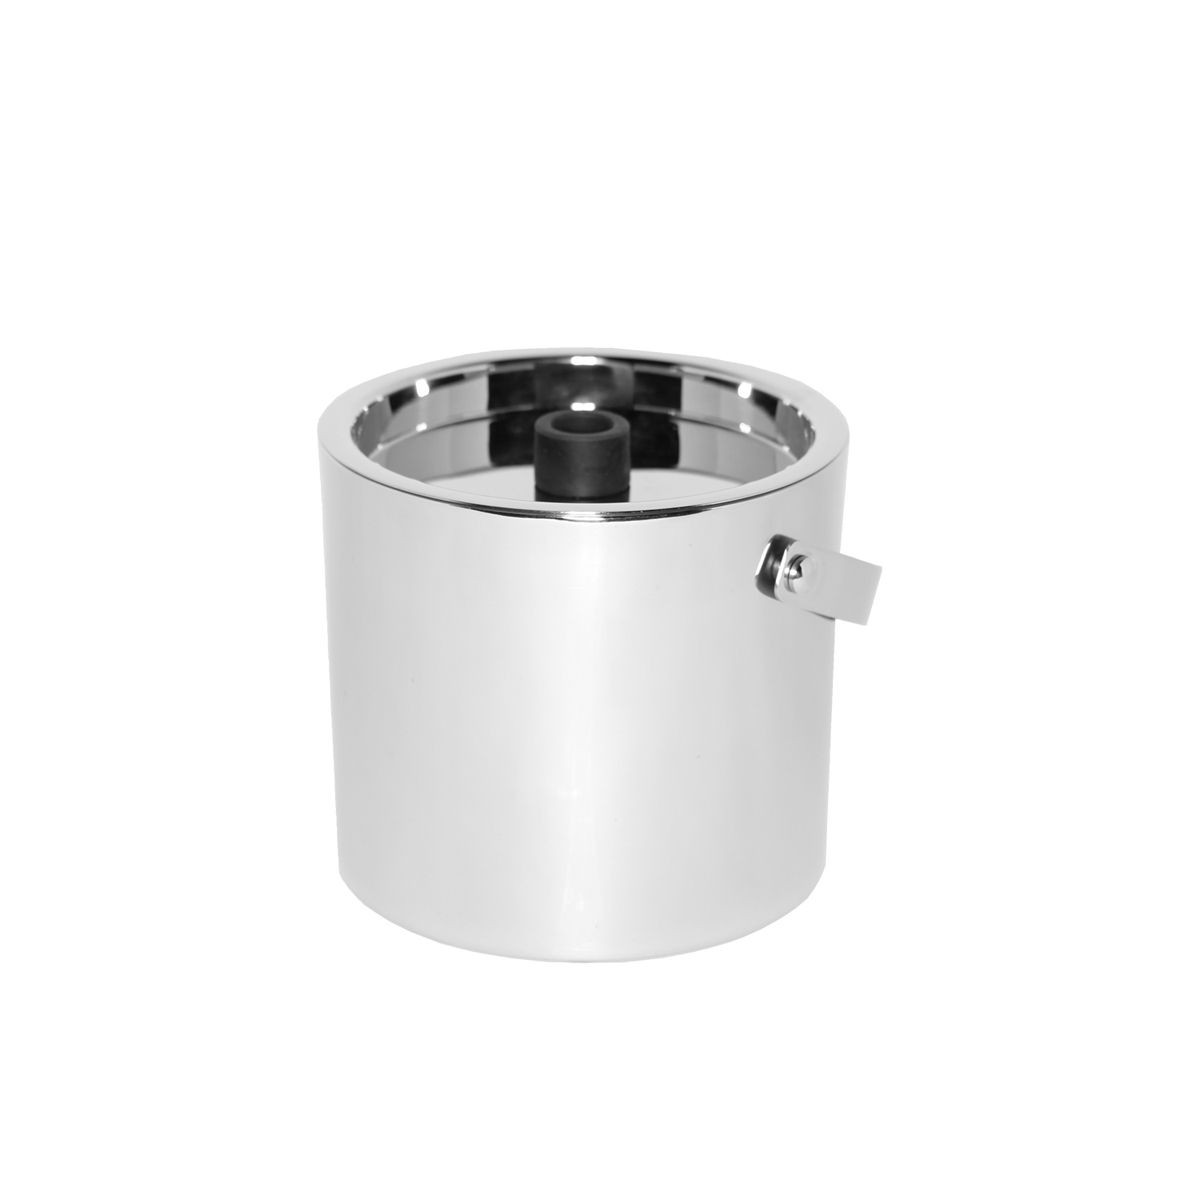 Service Ideas SM-1 SteelForme Double Wall Insulation Ice Bucket, 2.4 Qt.,